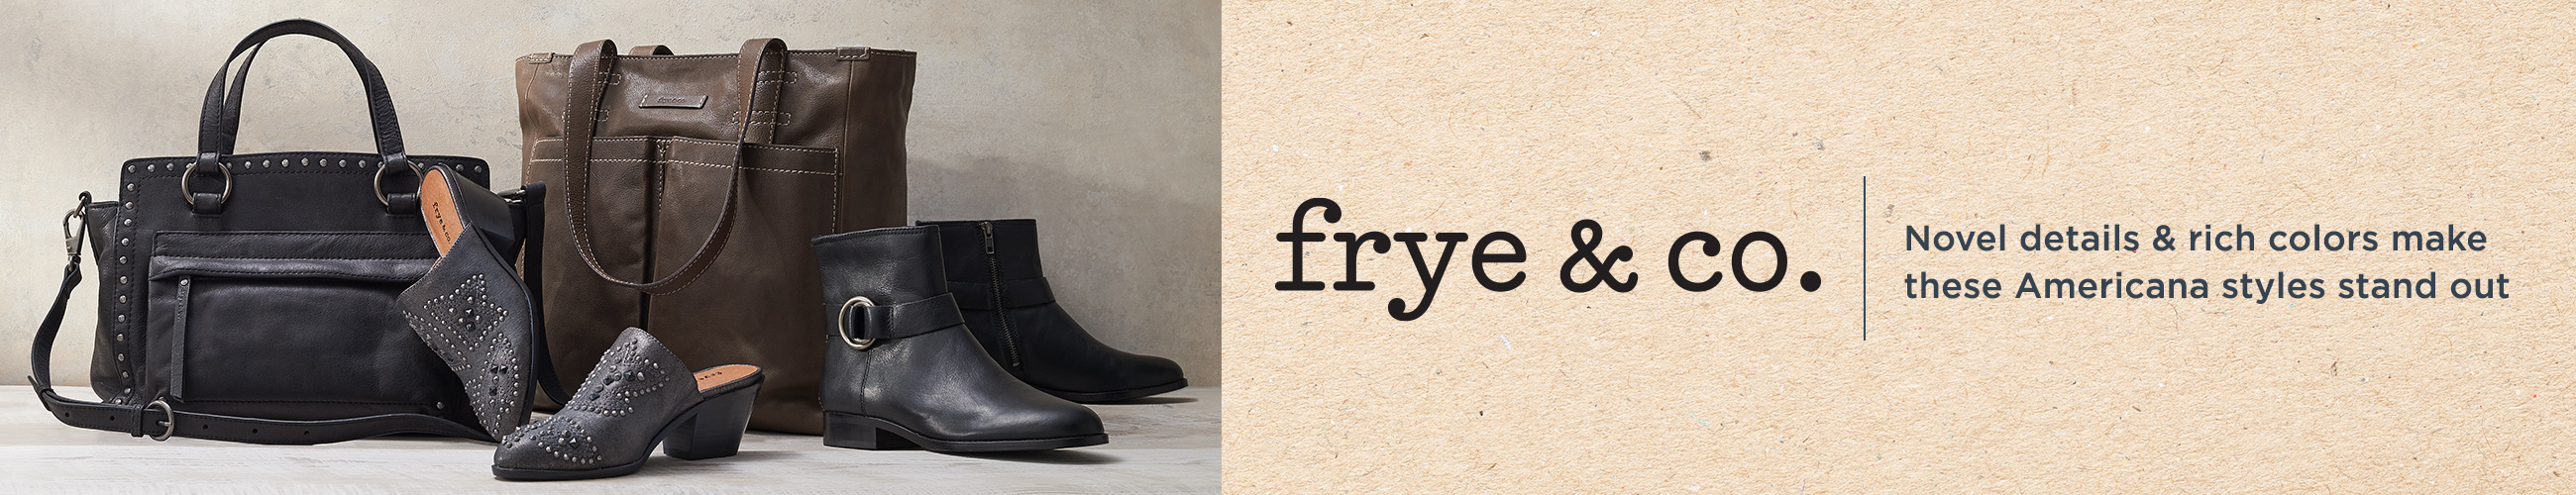 Frye & Co. Novel details & rich colors make these Americana styles stand out